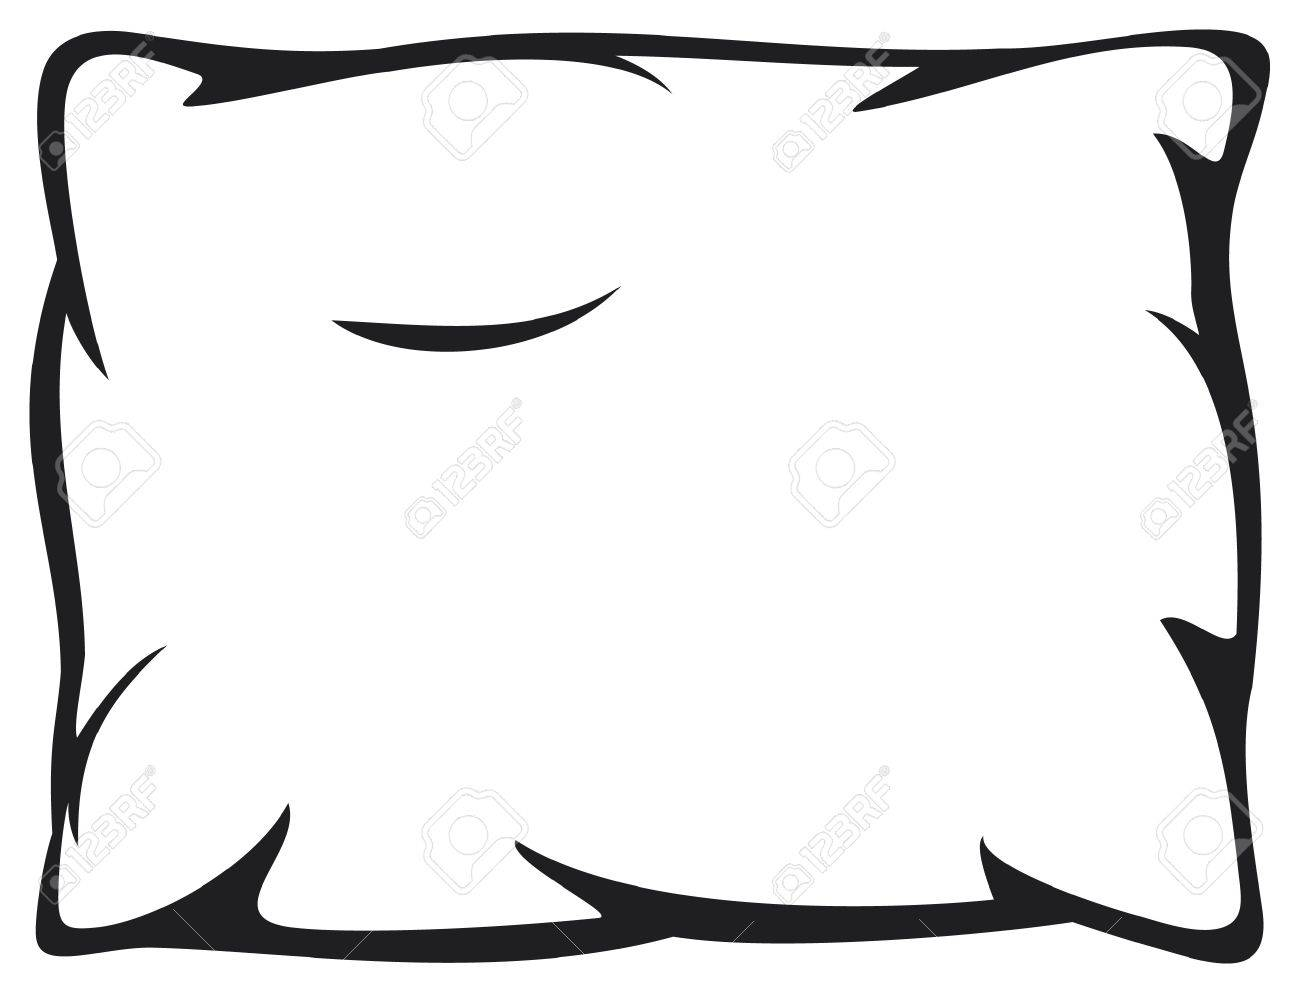 Clipart black and white pillow 6 » Clipart Station.